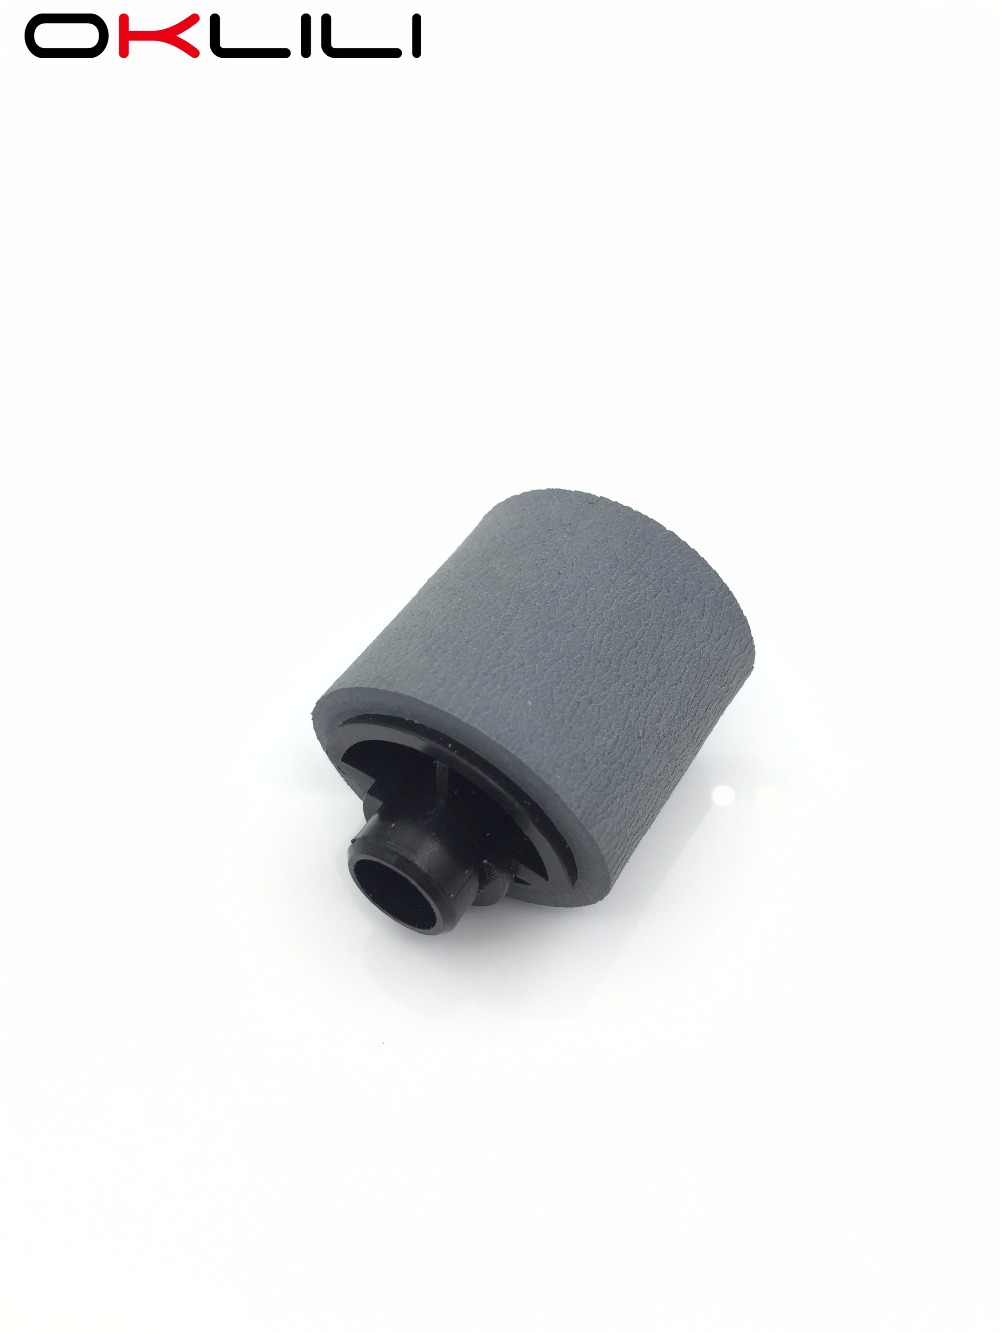 10X JC72-01231A Pickup Roller for Samsung ML1510 1710 1740 1750 2250 SCX4016 4116 4100 4200 4220 4300 4500 4520 4720 SF560 SF565 free shipping 10 pcs jc72 01231a pickup roller new compatible for samsung for ml 1510 1710 1740 1750 scx 4200 416 4116 4216